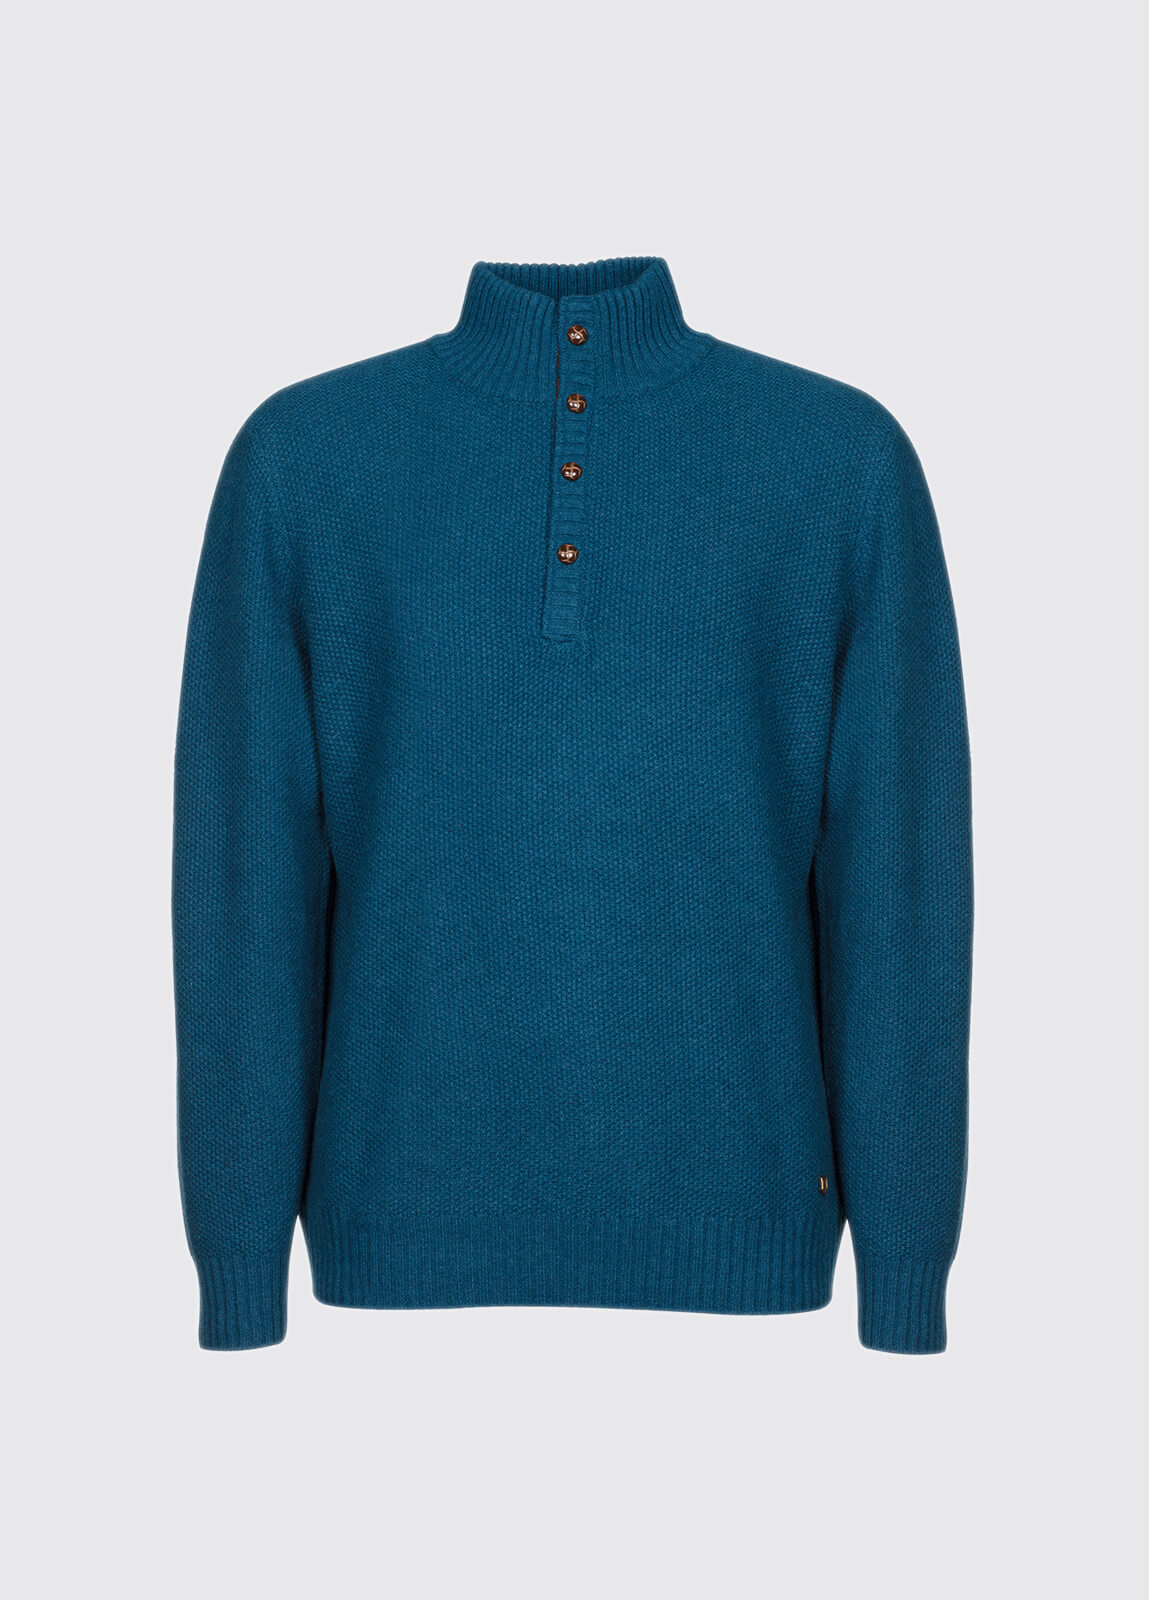 Donohoe Sweater - Royal Blue